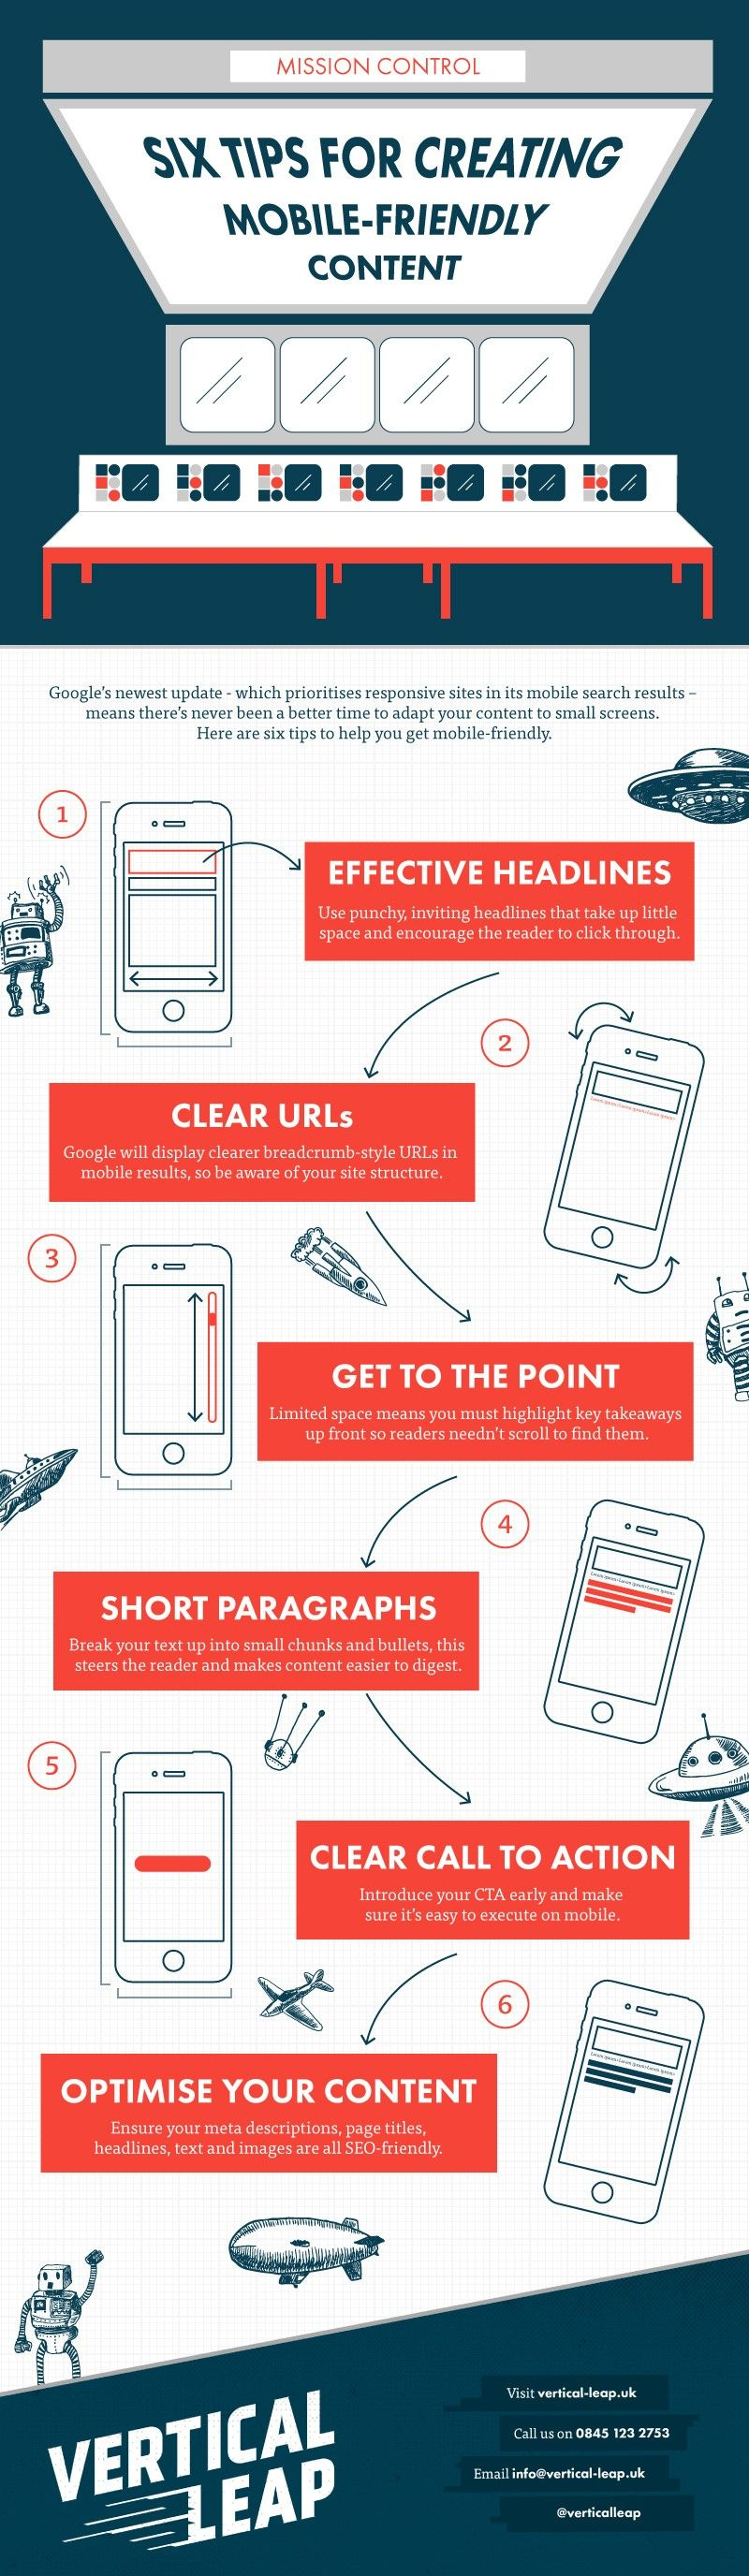 6 tips for creating mobile-friendly content - #infographic